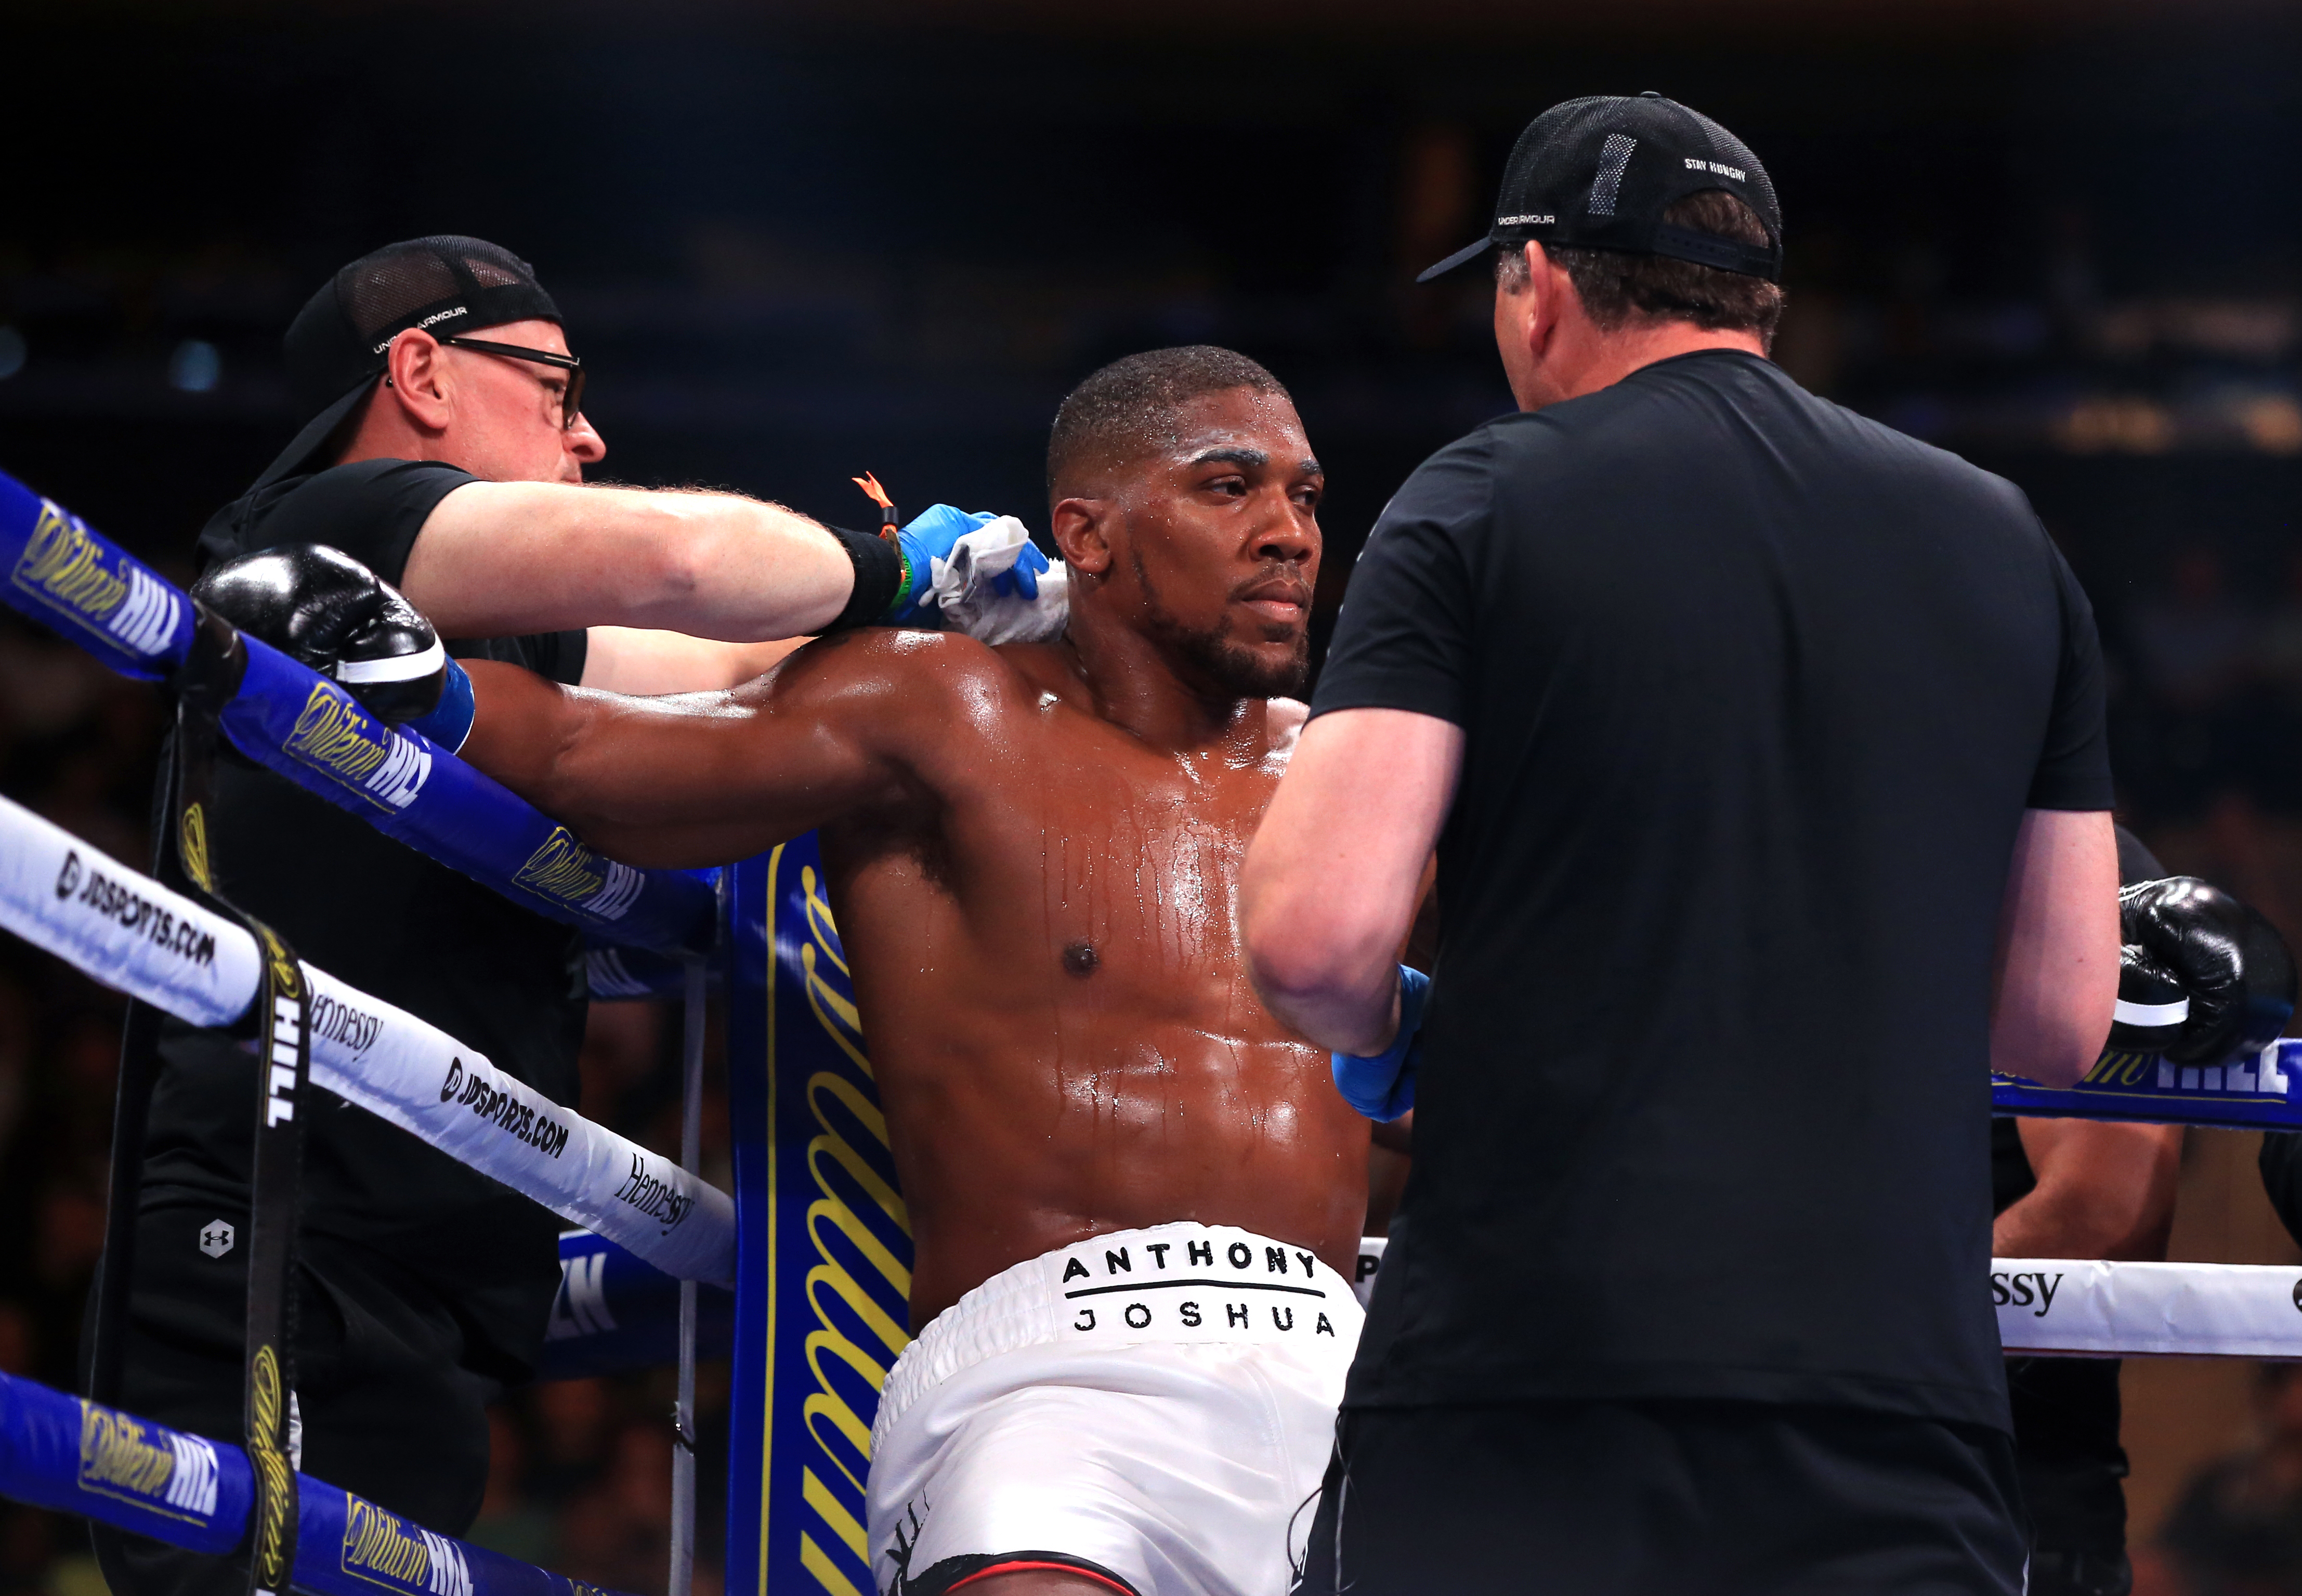 Joshua didn't look right on the night against Ruiz. Image: PA Images